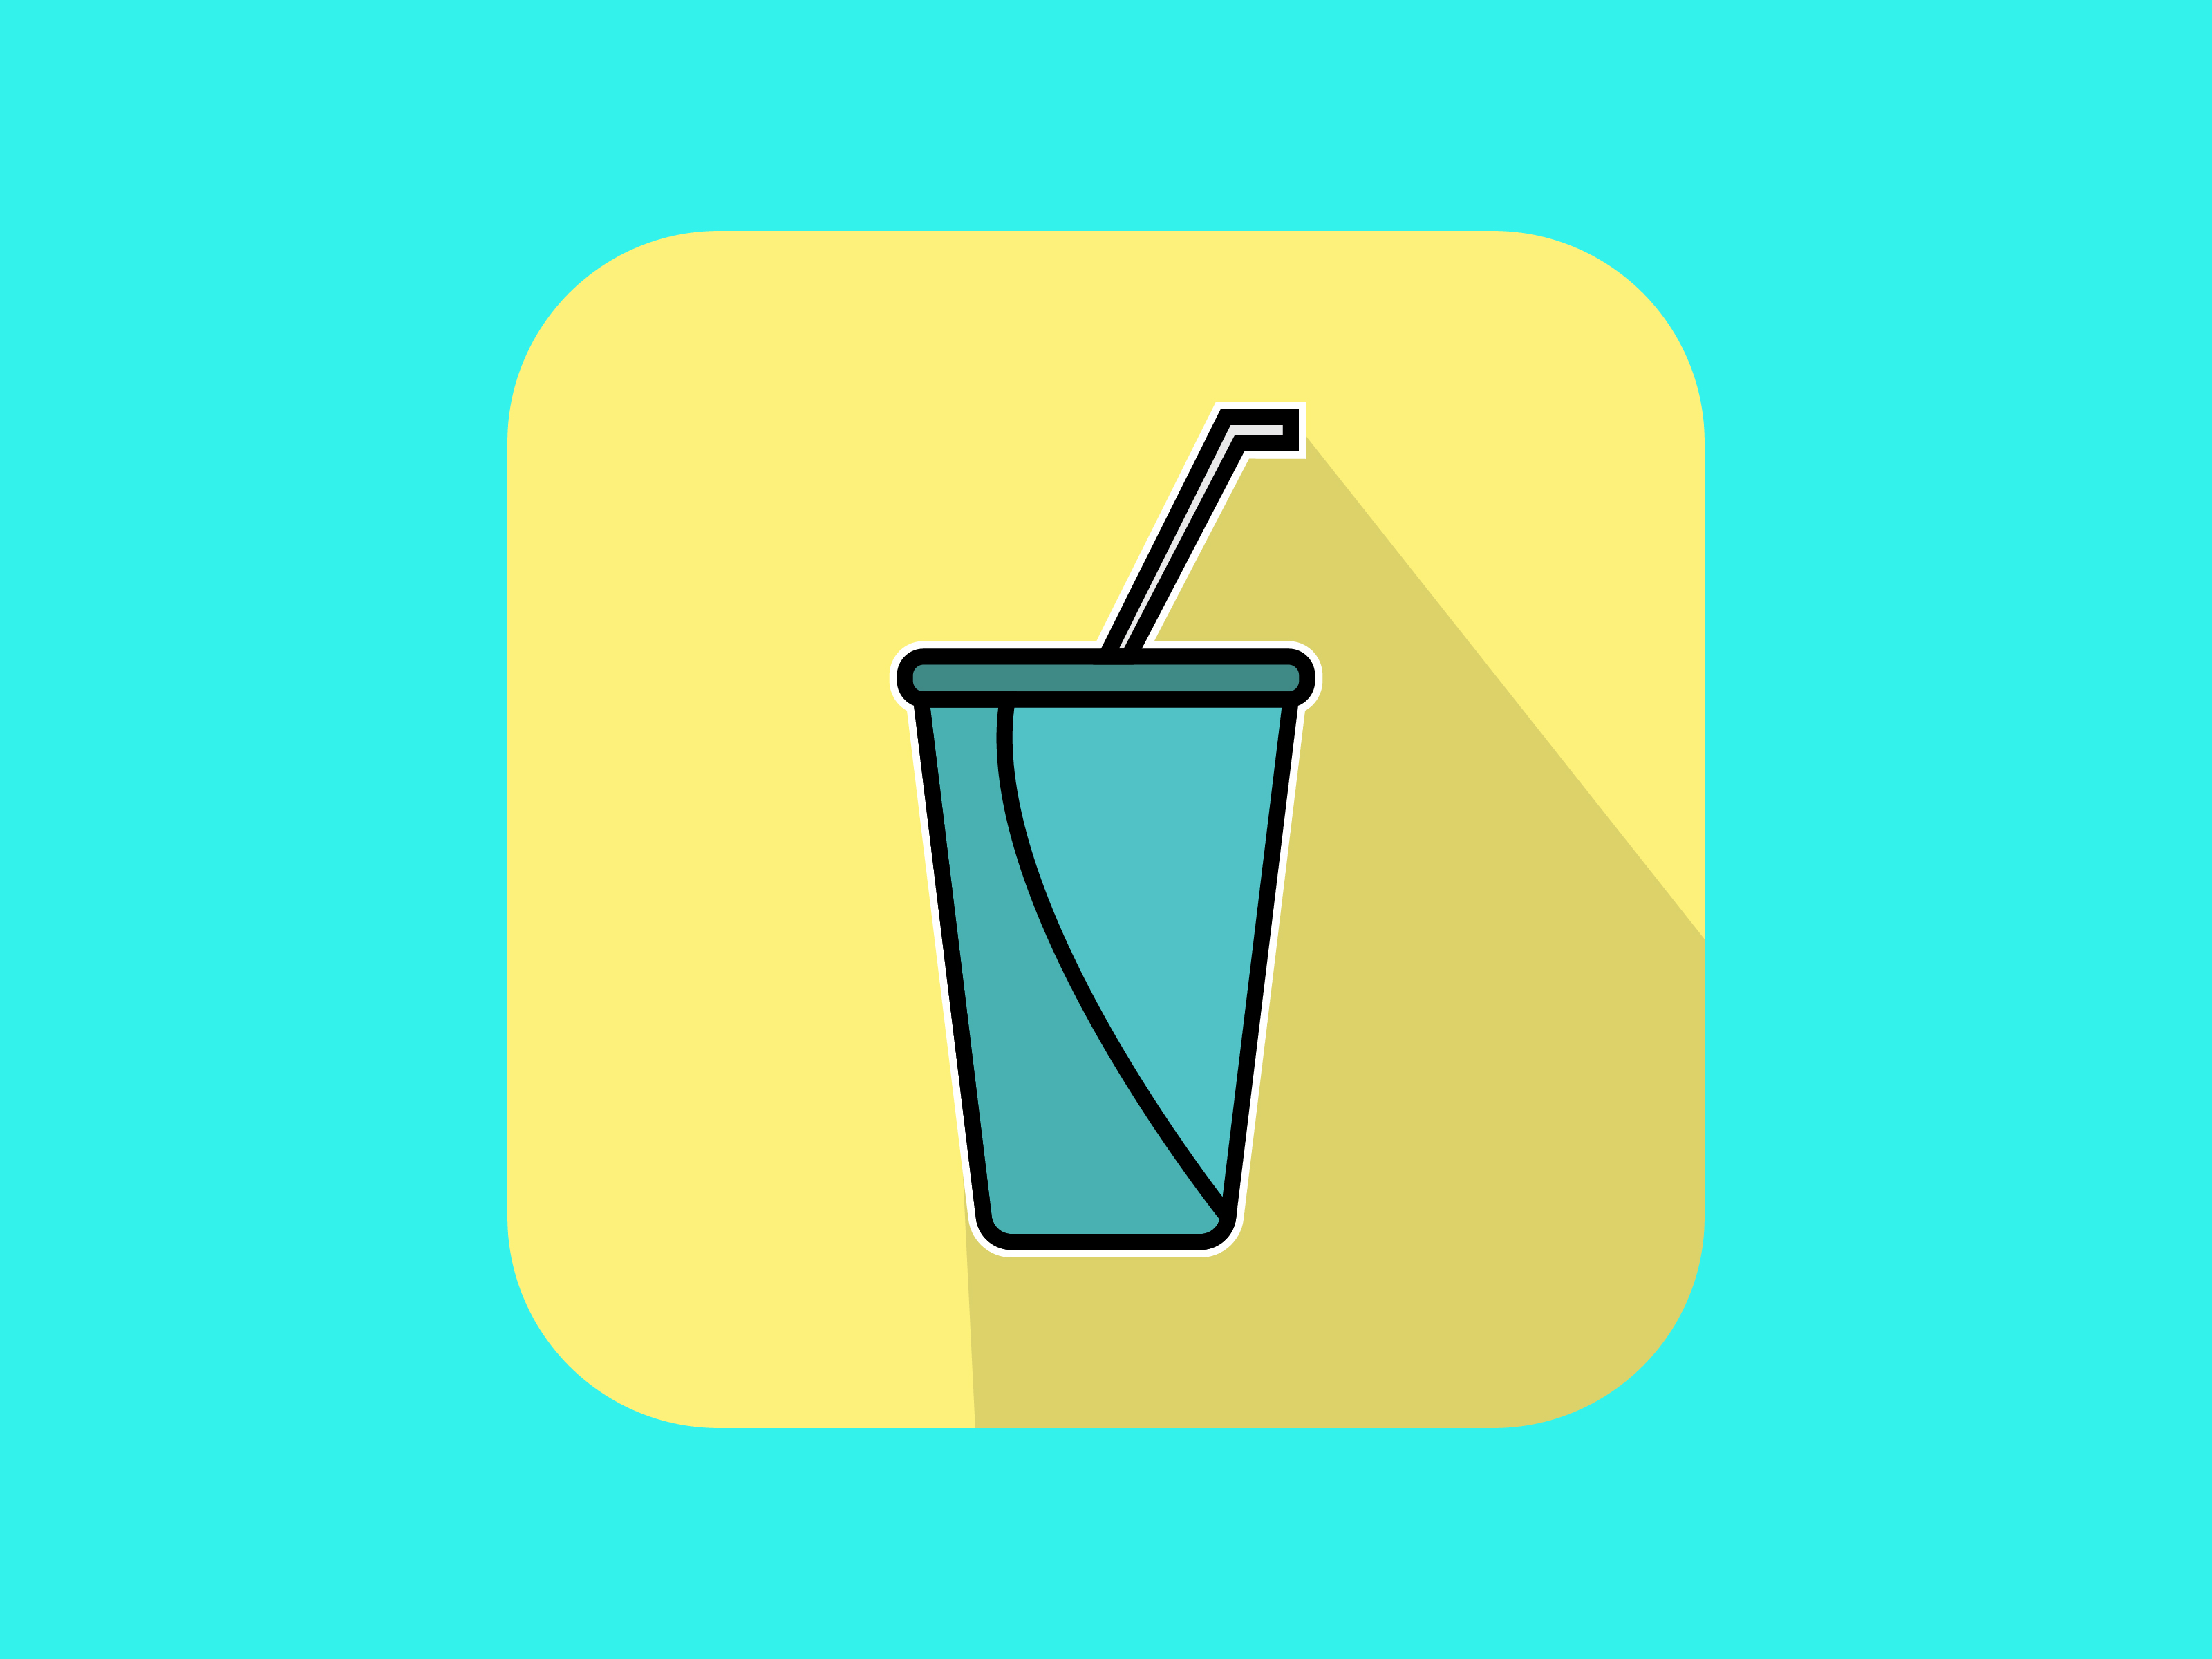 Download Free Fresh Soft Drink Icon Modern Outline Graphic By Meandmydate for Cricut Explore, Silhouette and other cutting machines.